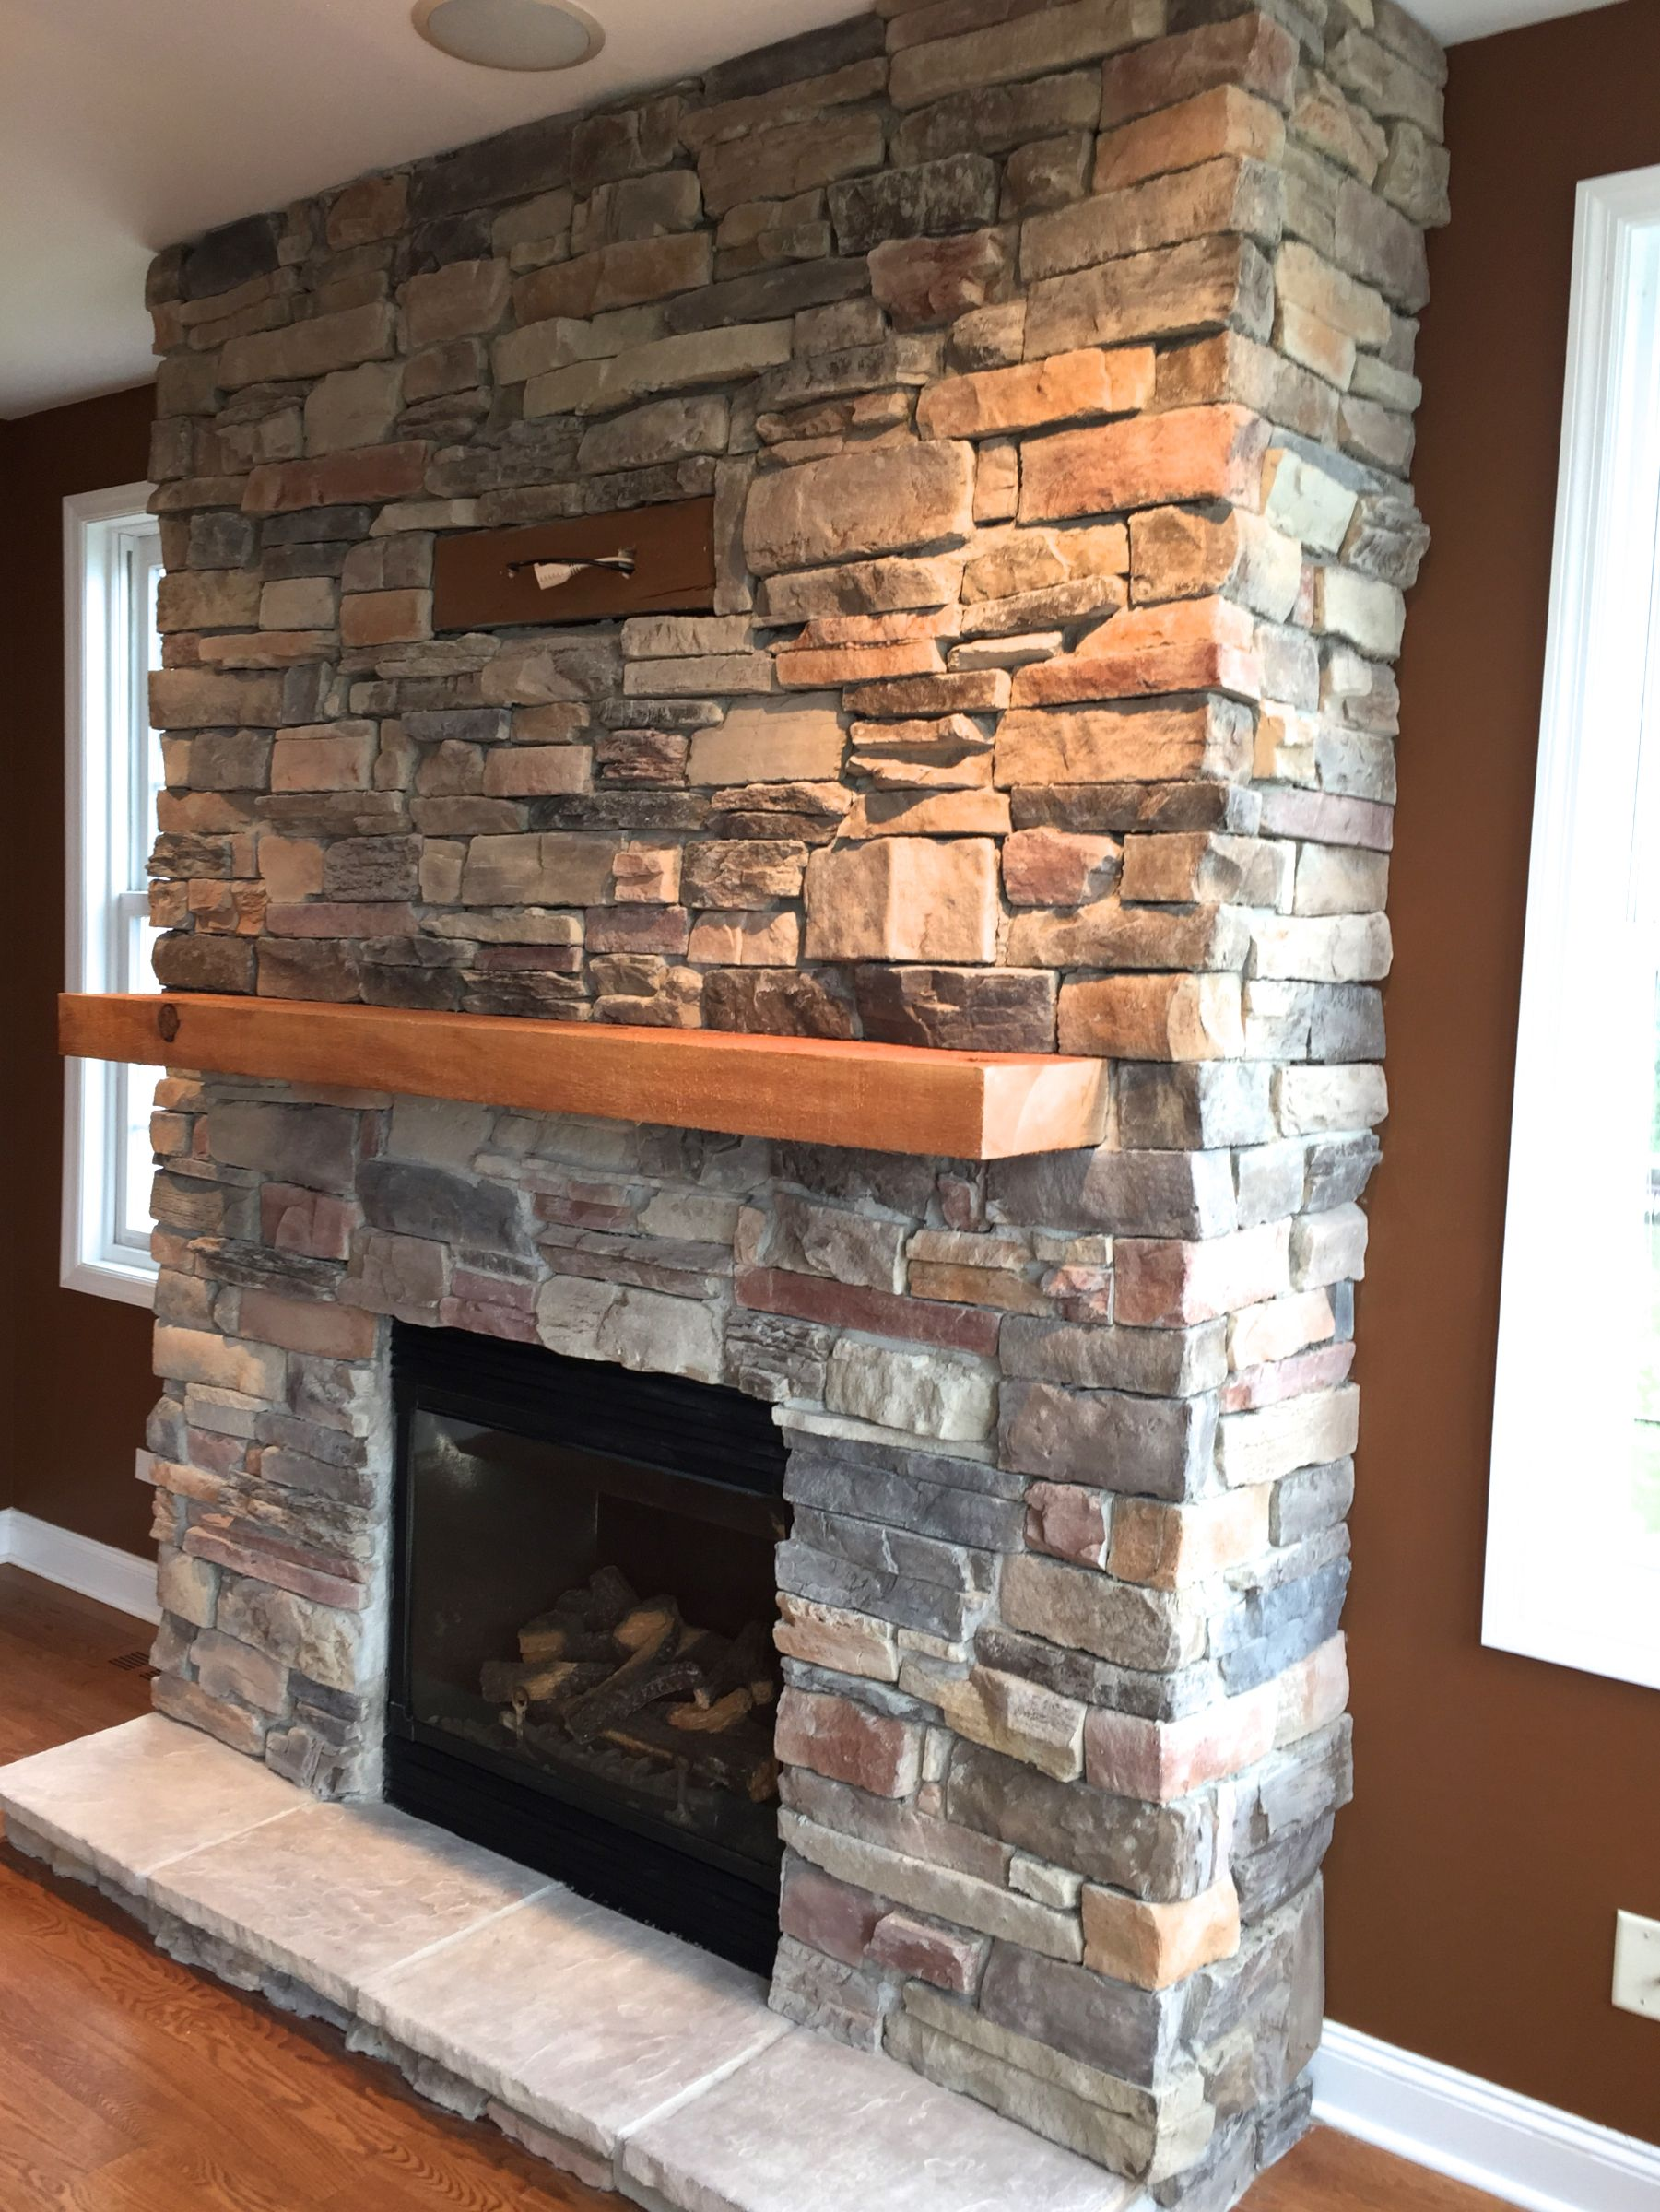 adding light to mountain ledge stone veneer creates unique shadows rh pinterest co uk